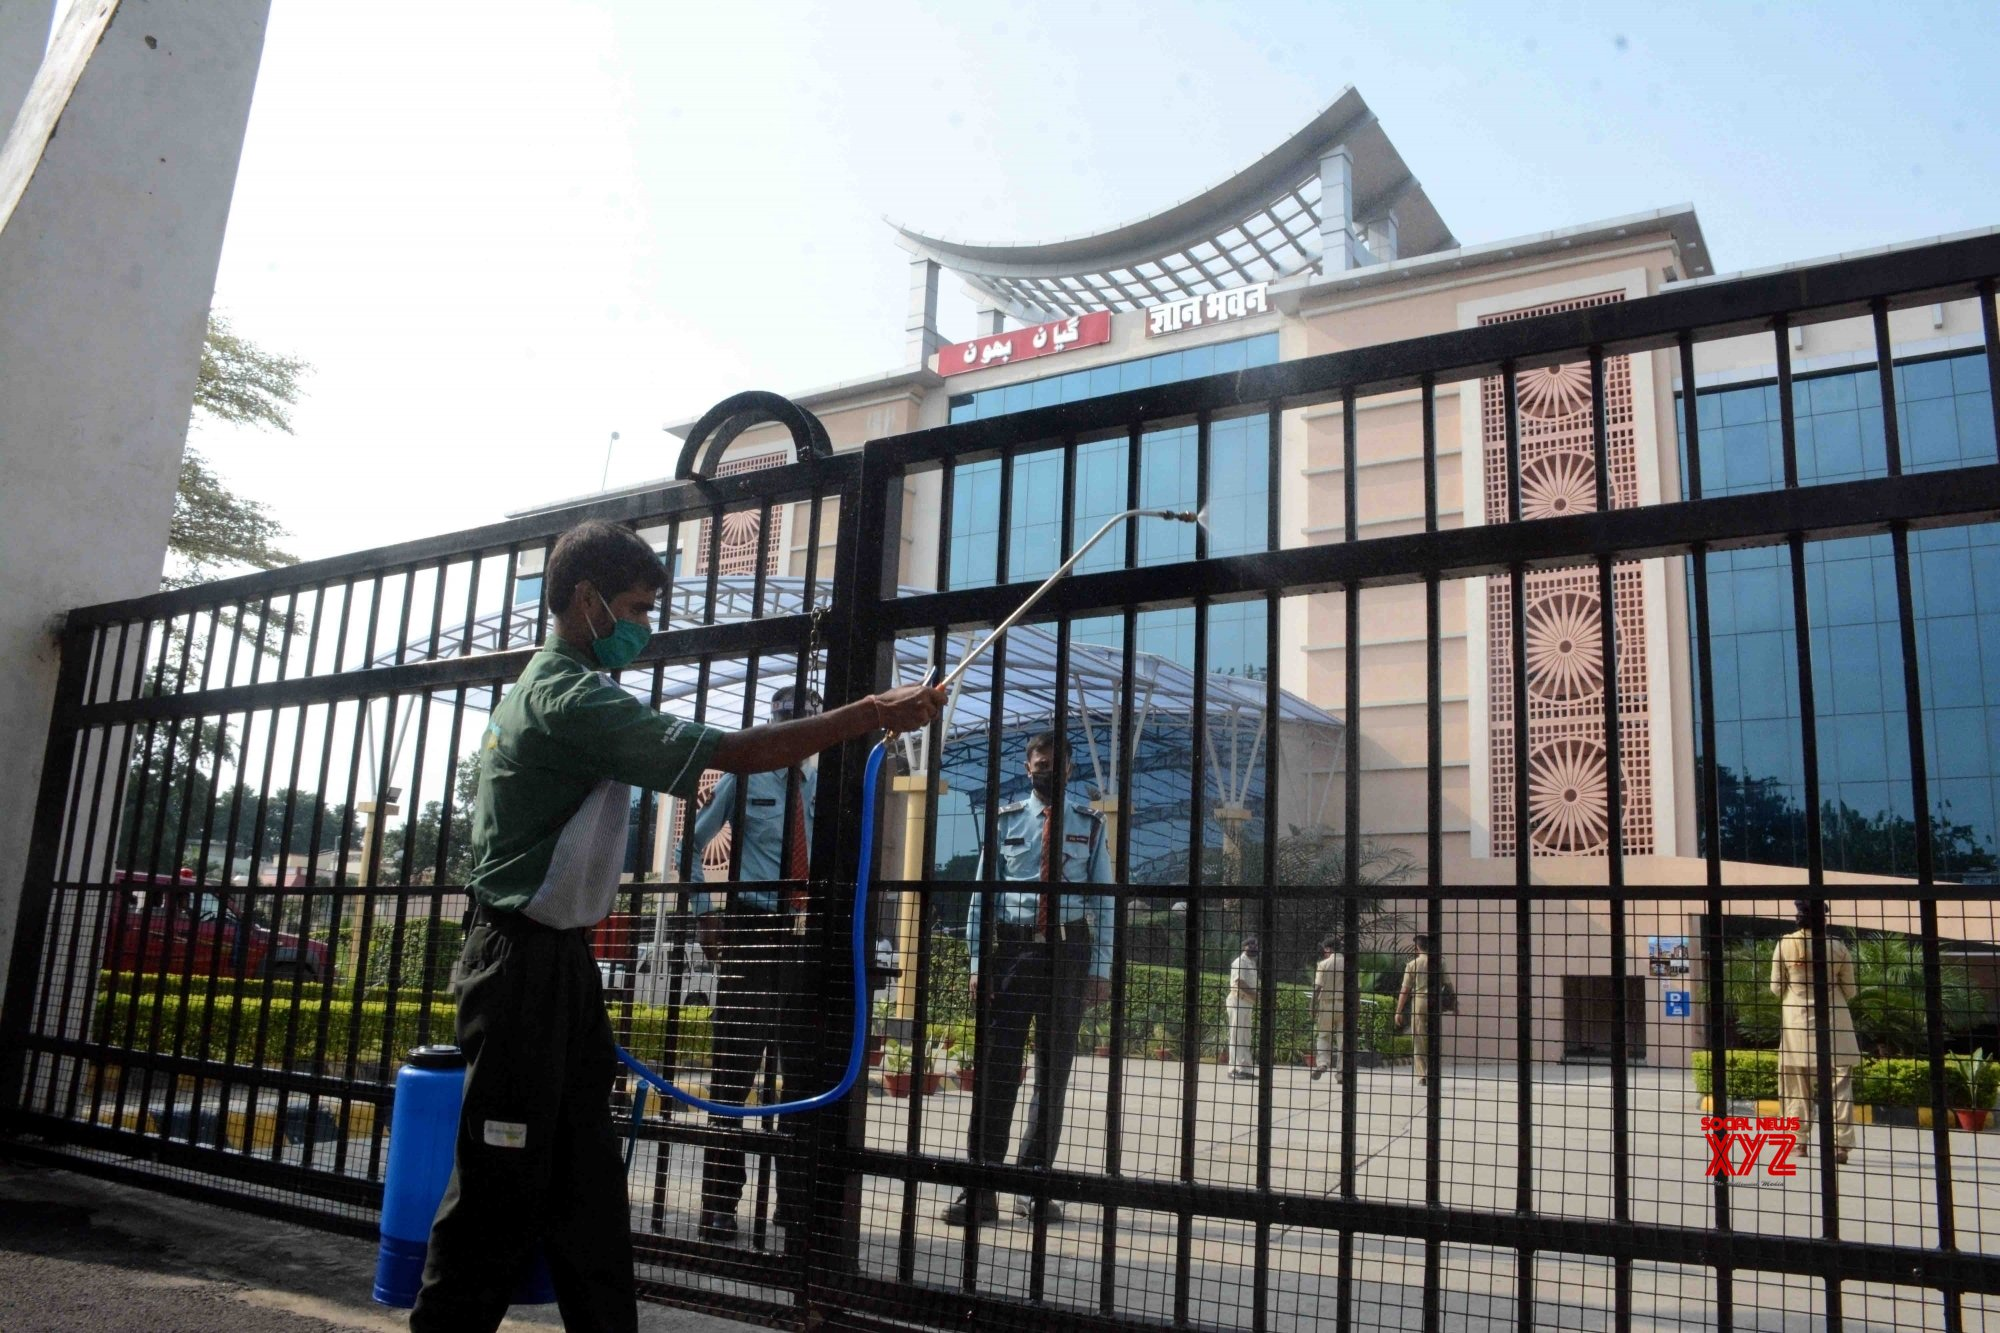 Patna: Preparations underway at Gyan Bhawan for four - day Monsoon session #Gallery